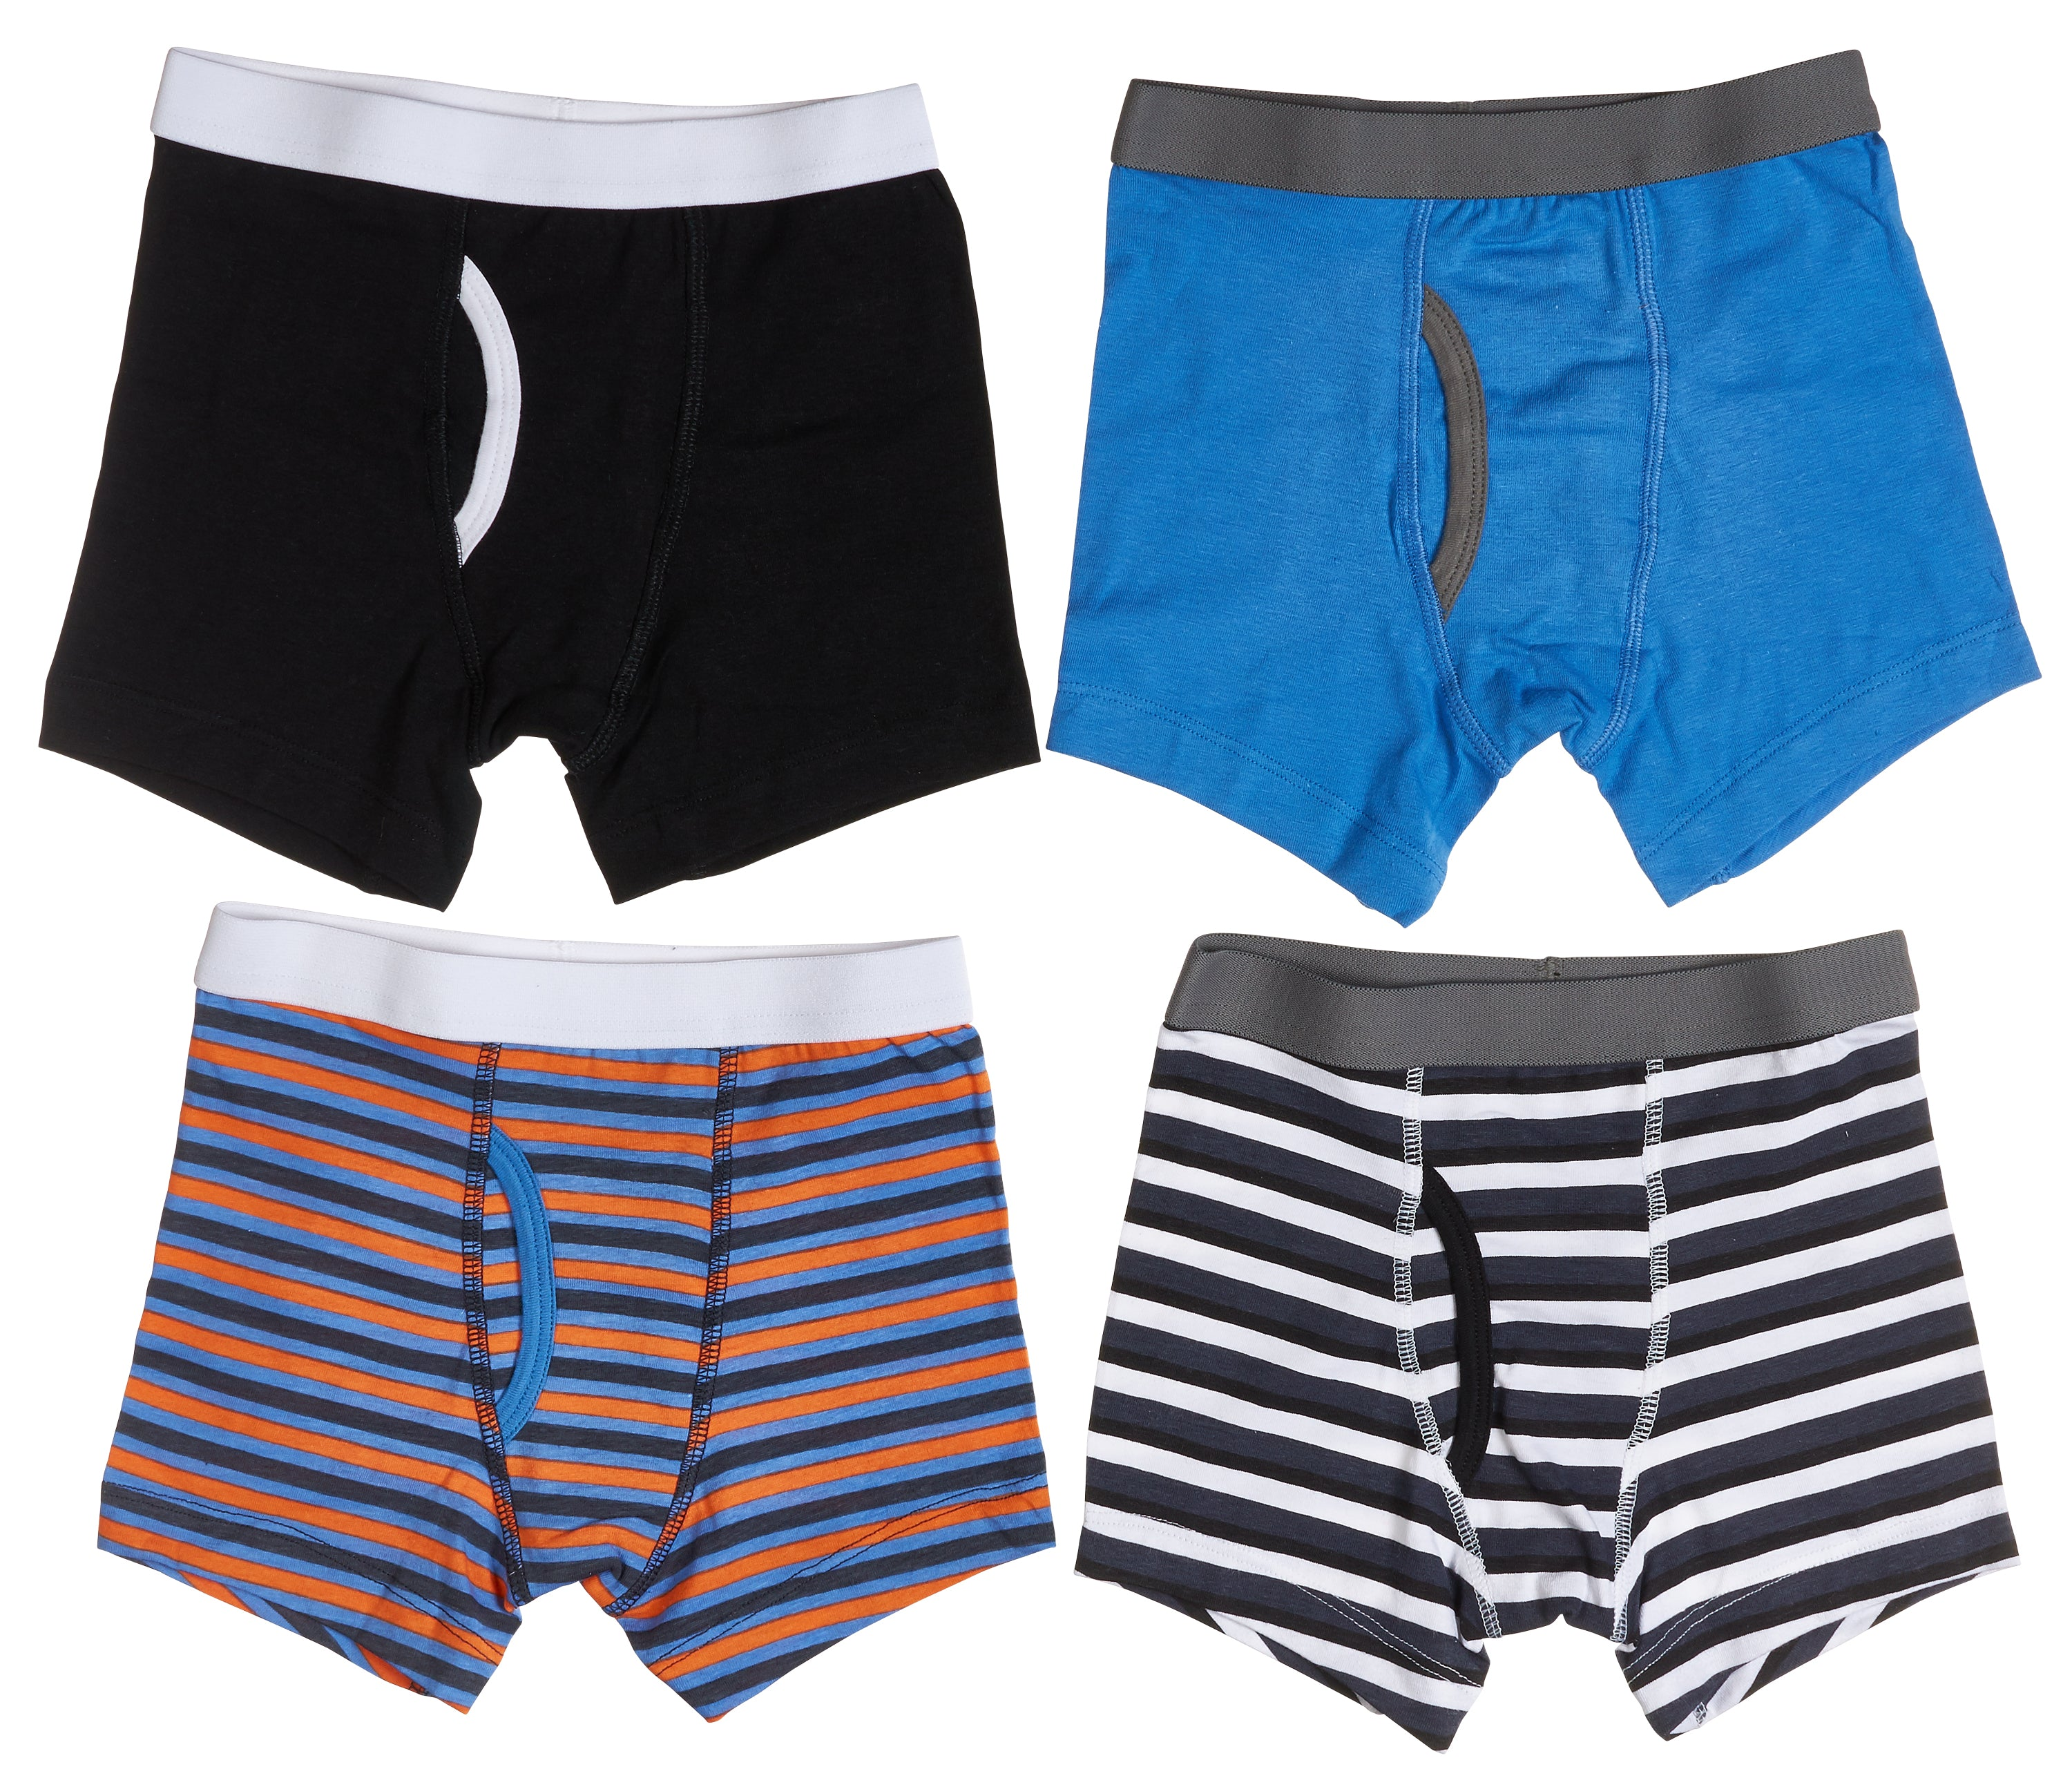 4-Pack Boys Cotton Boxer Briefs Underwear (Blue/Orange/Grey/Black)